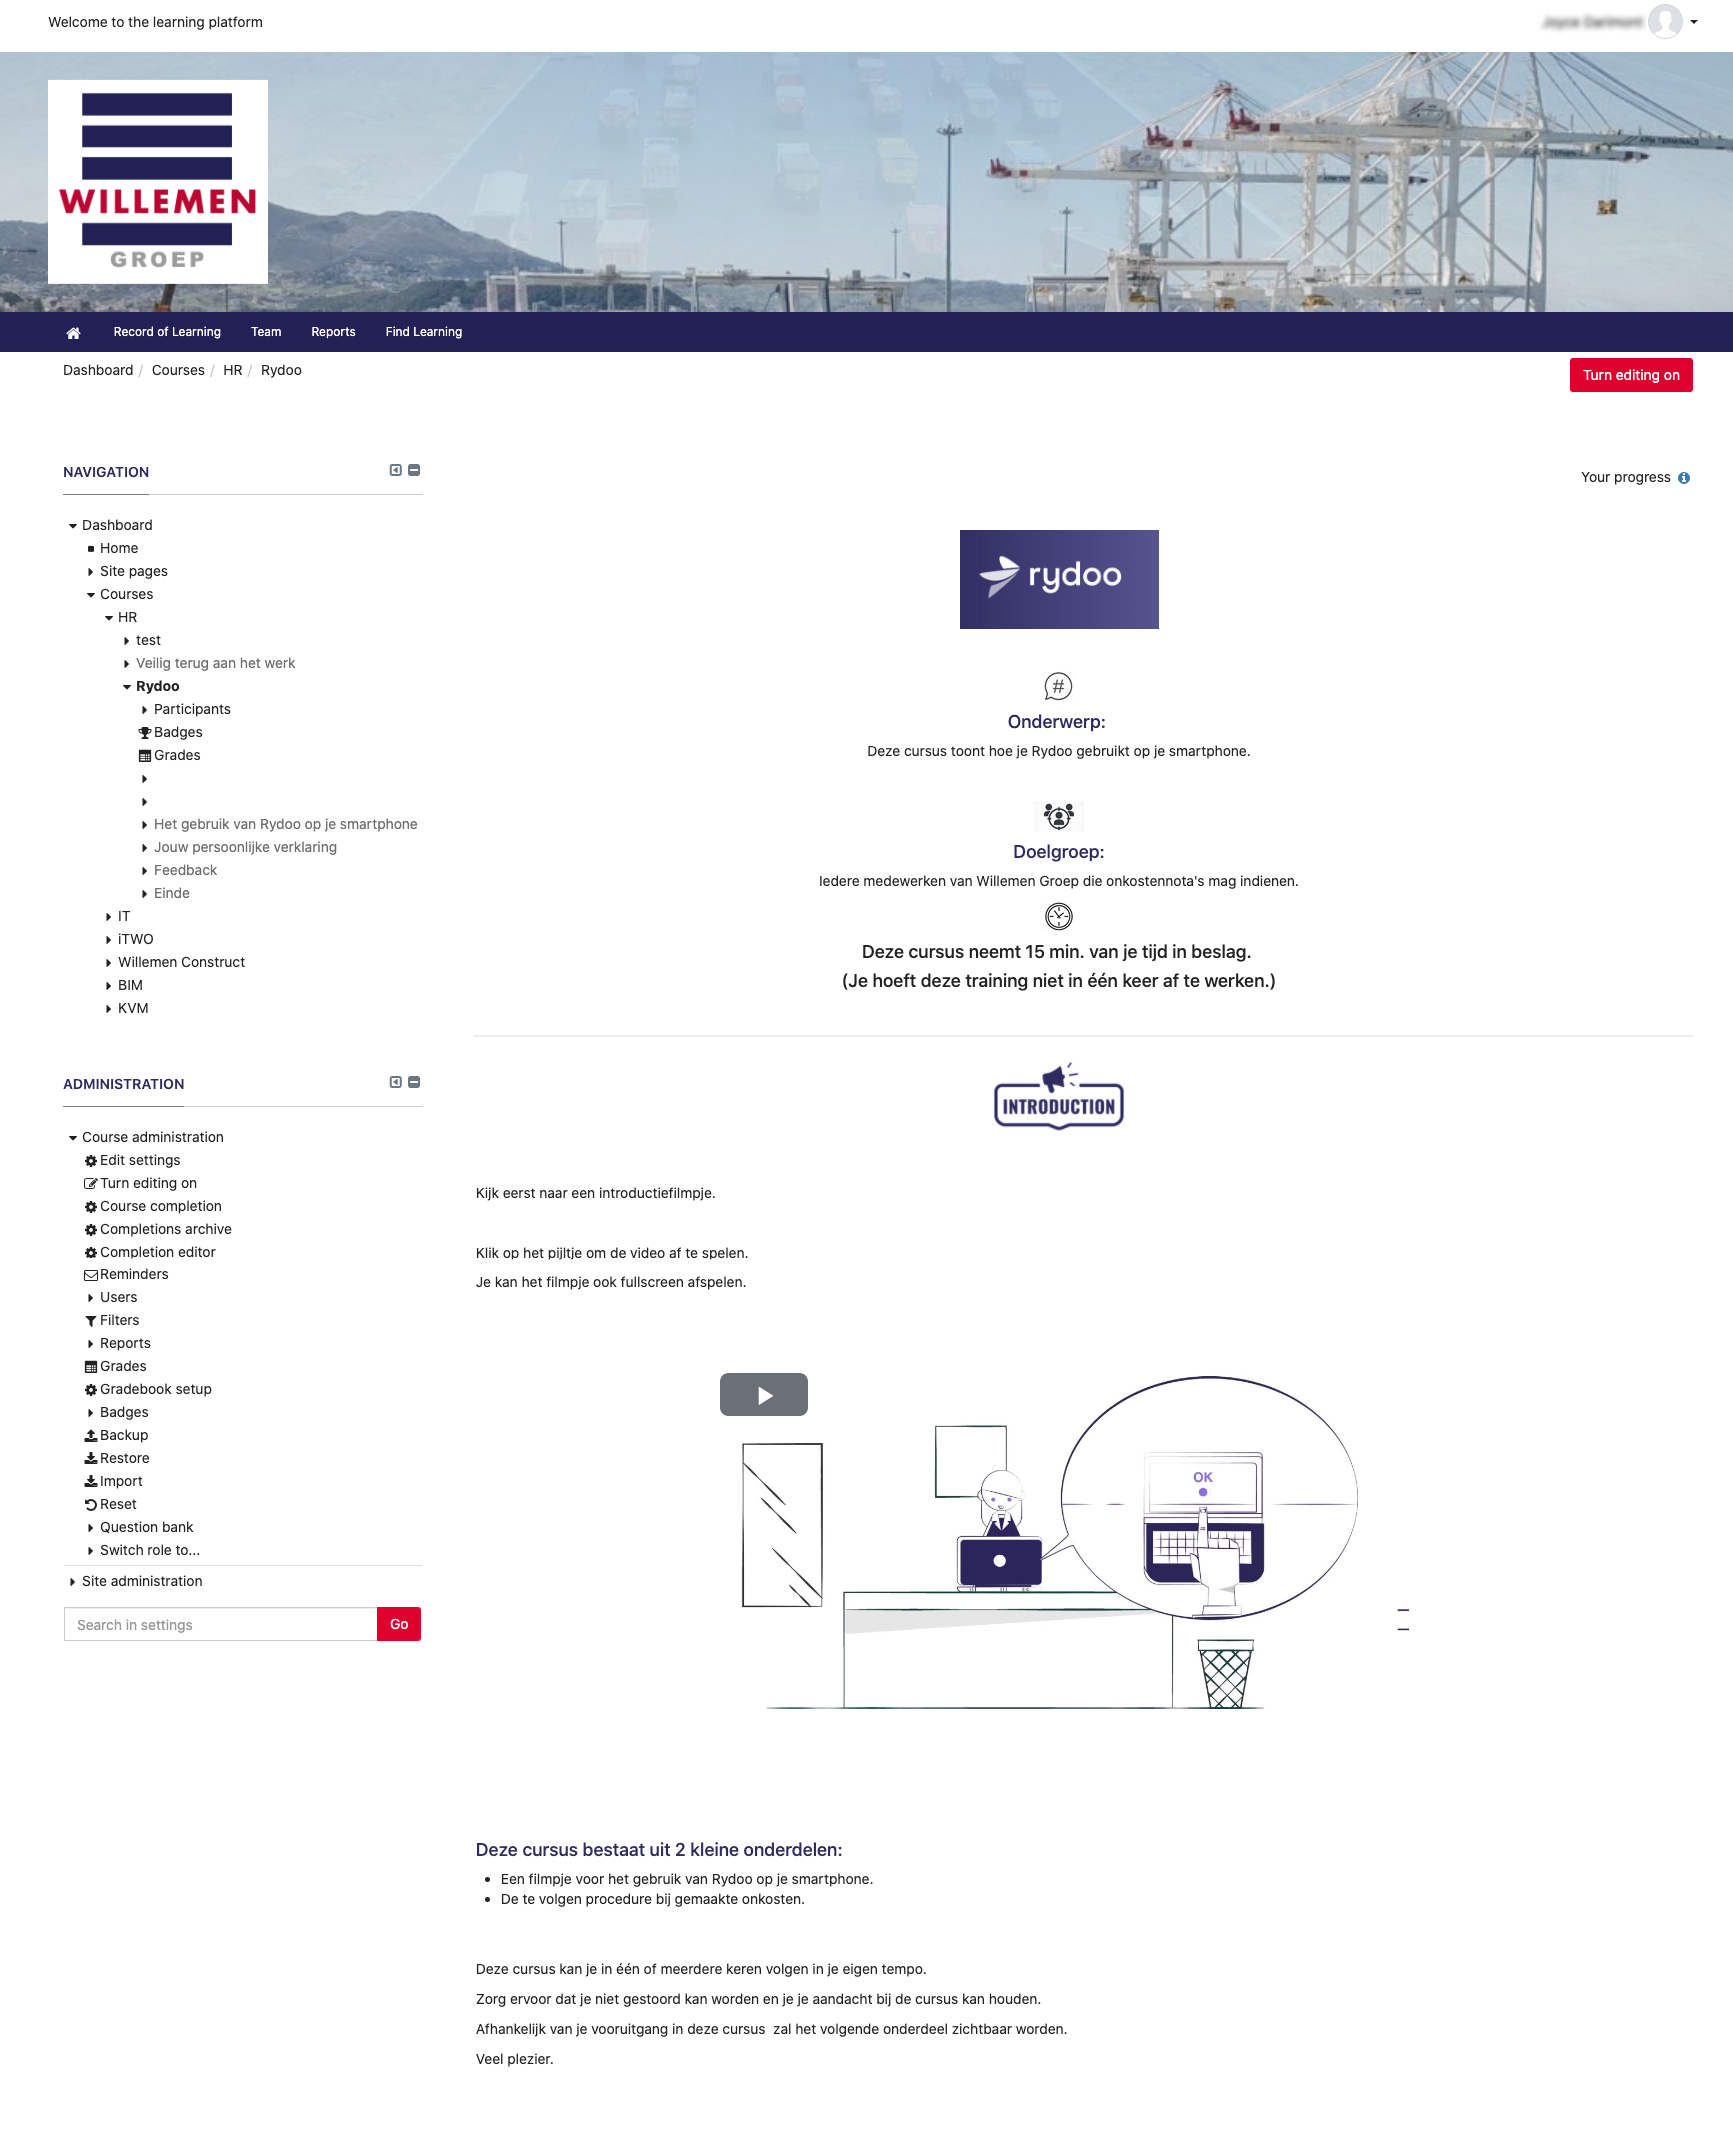 Willemen Group lms visual